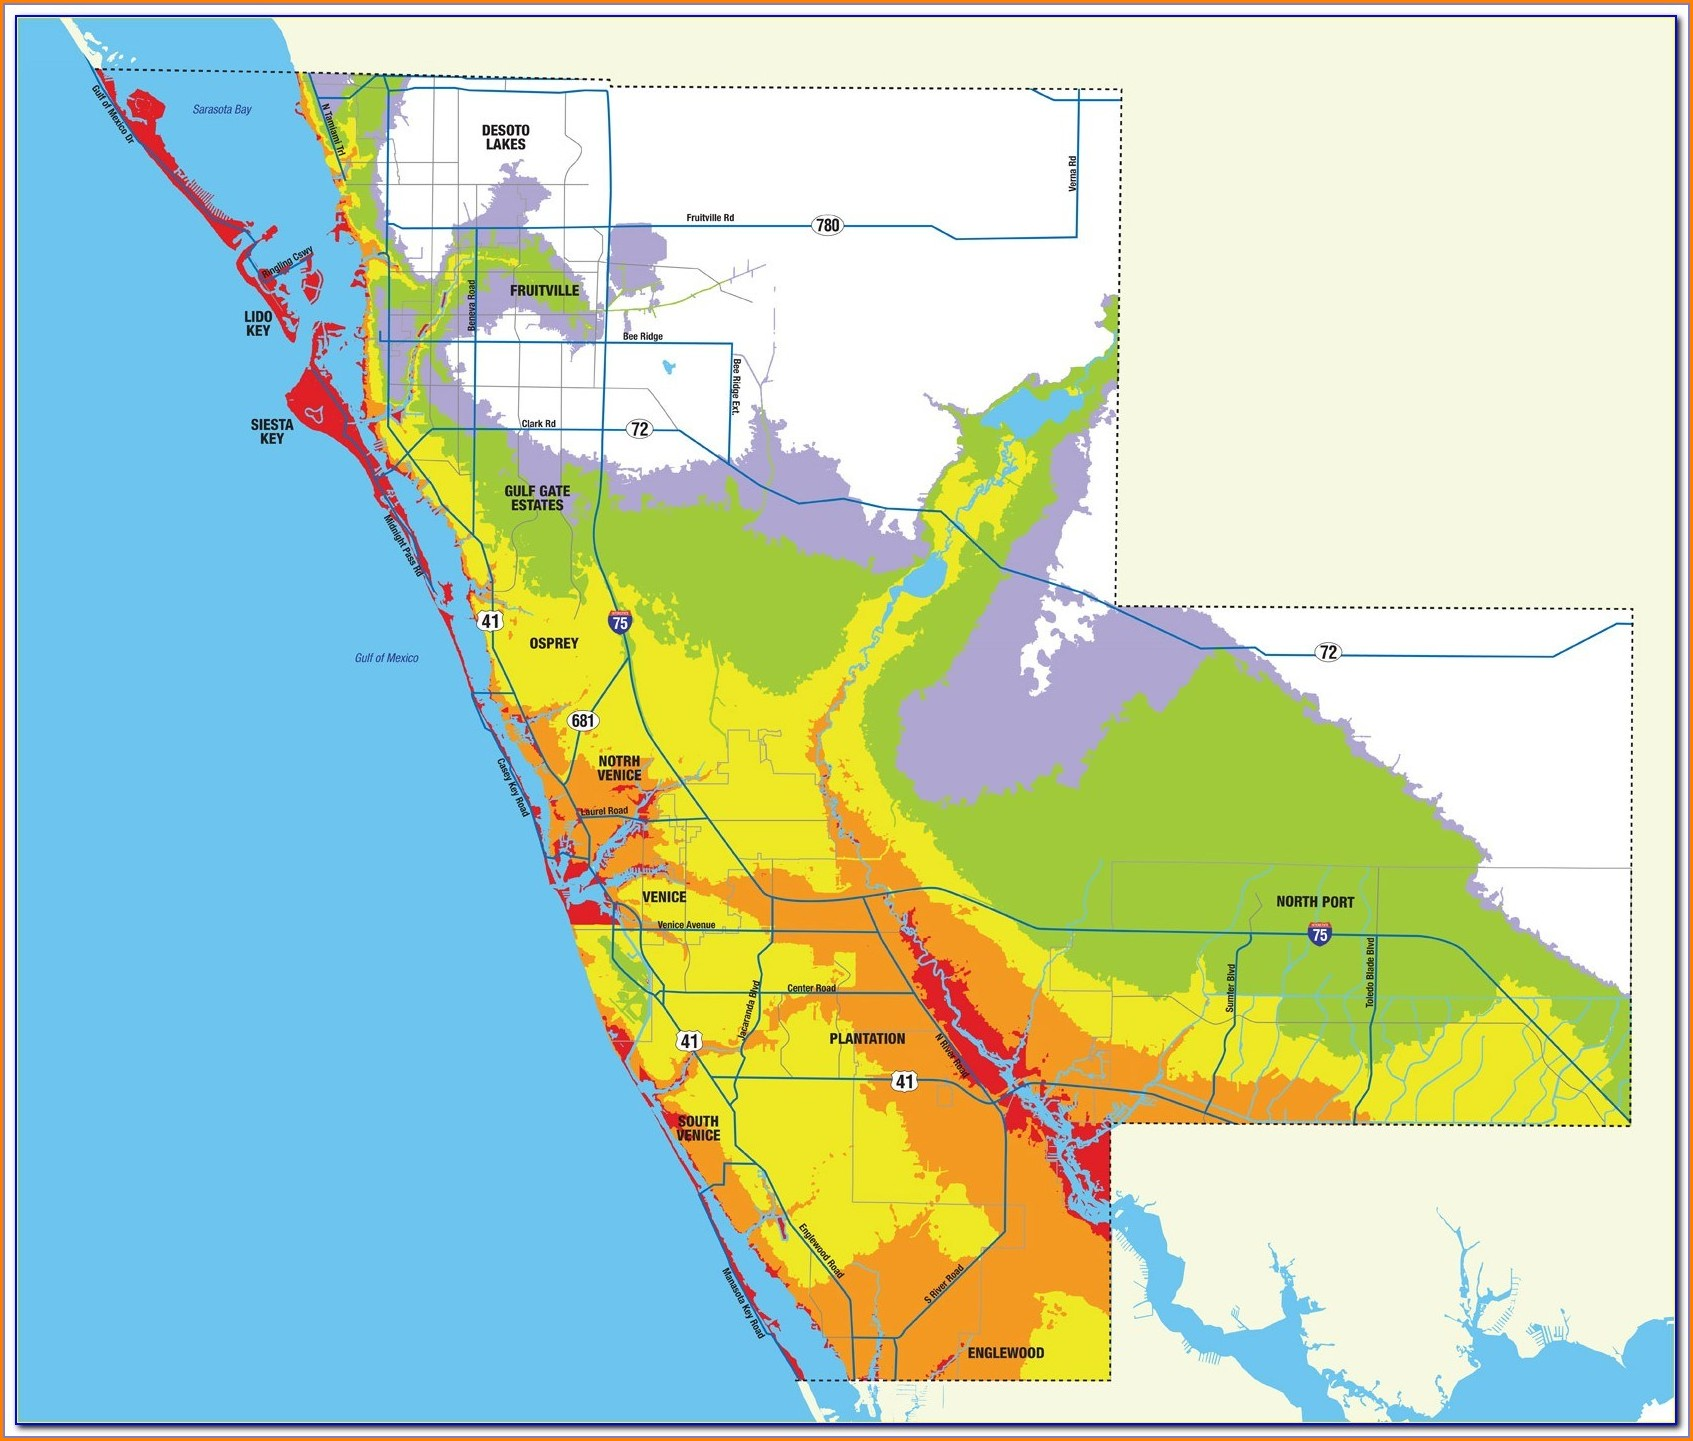 Sarasota County Flood Zone Map